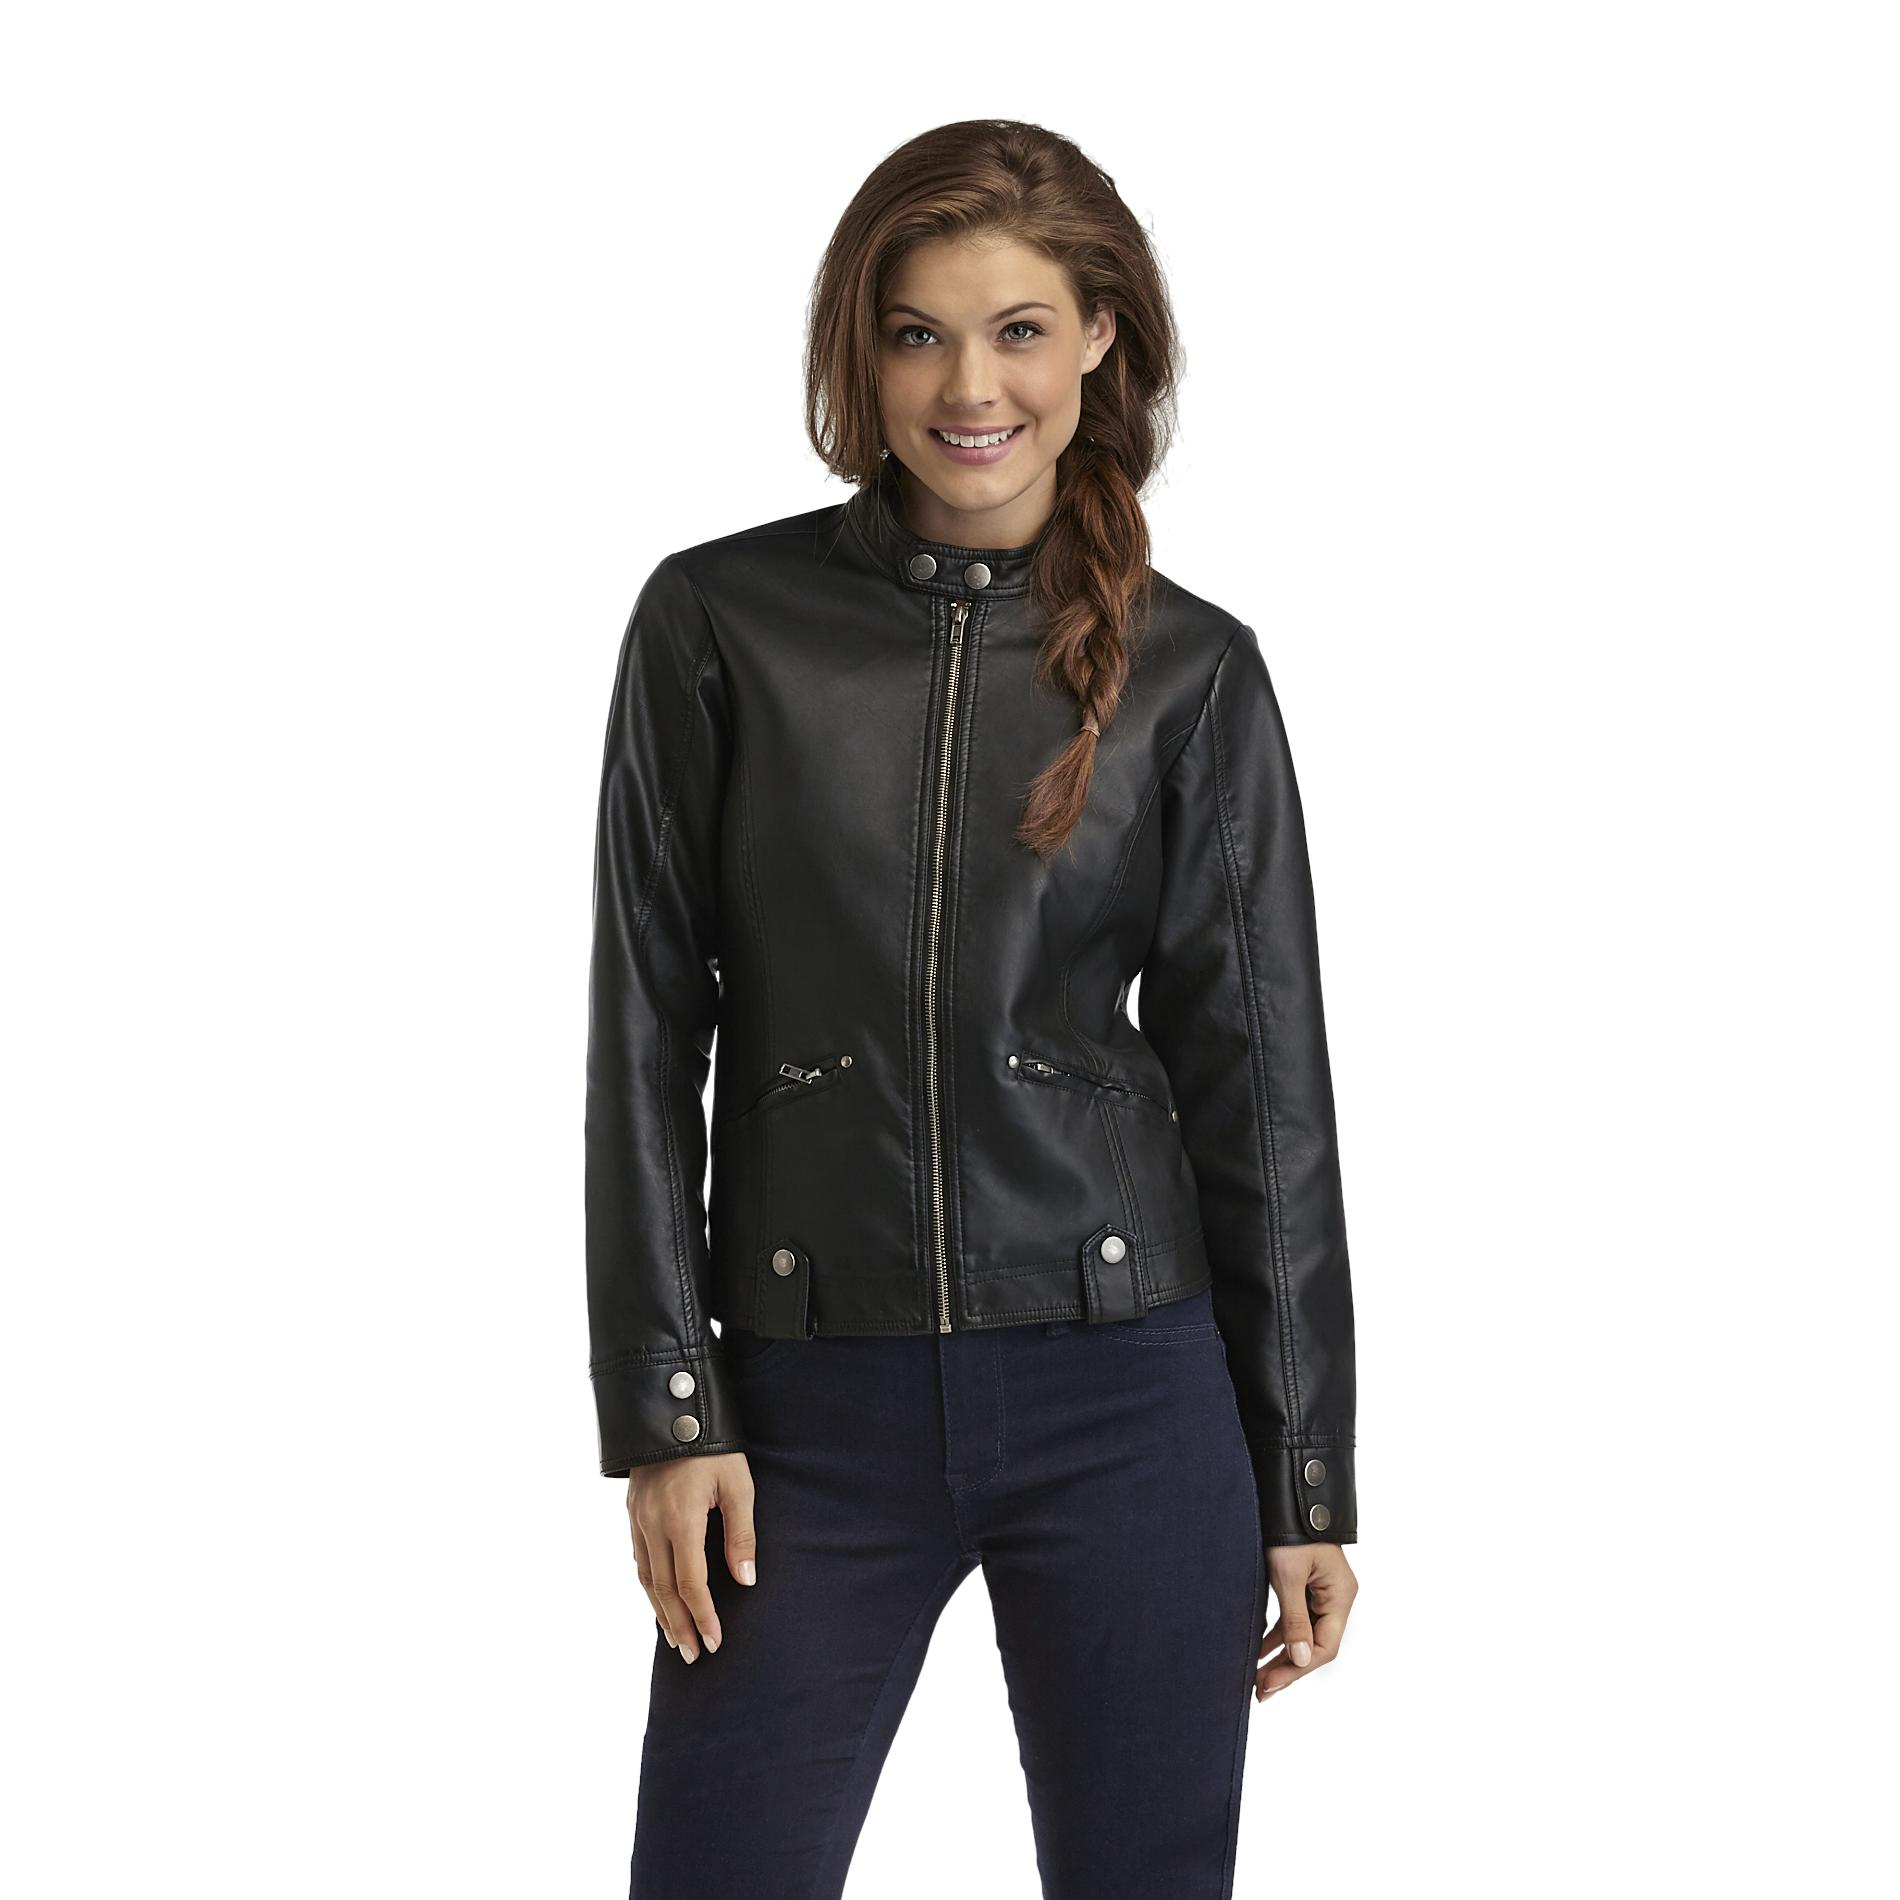 Louise Paris  Women's Faux Leather Jacket